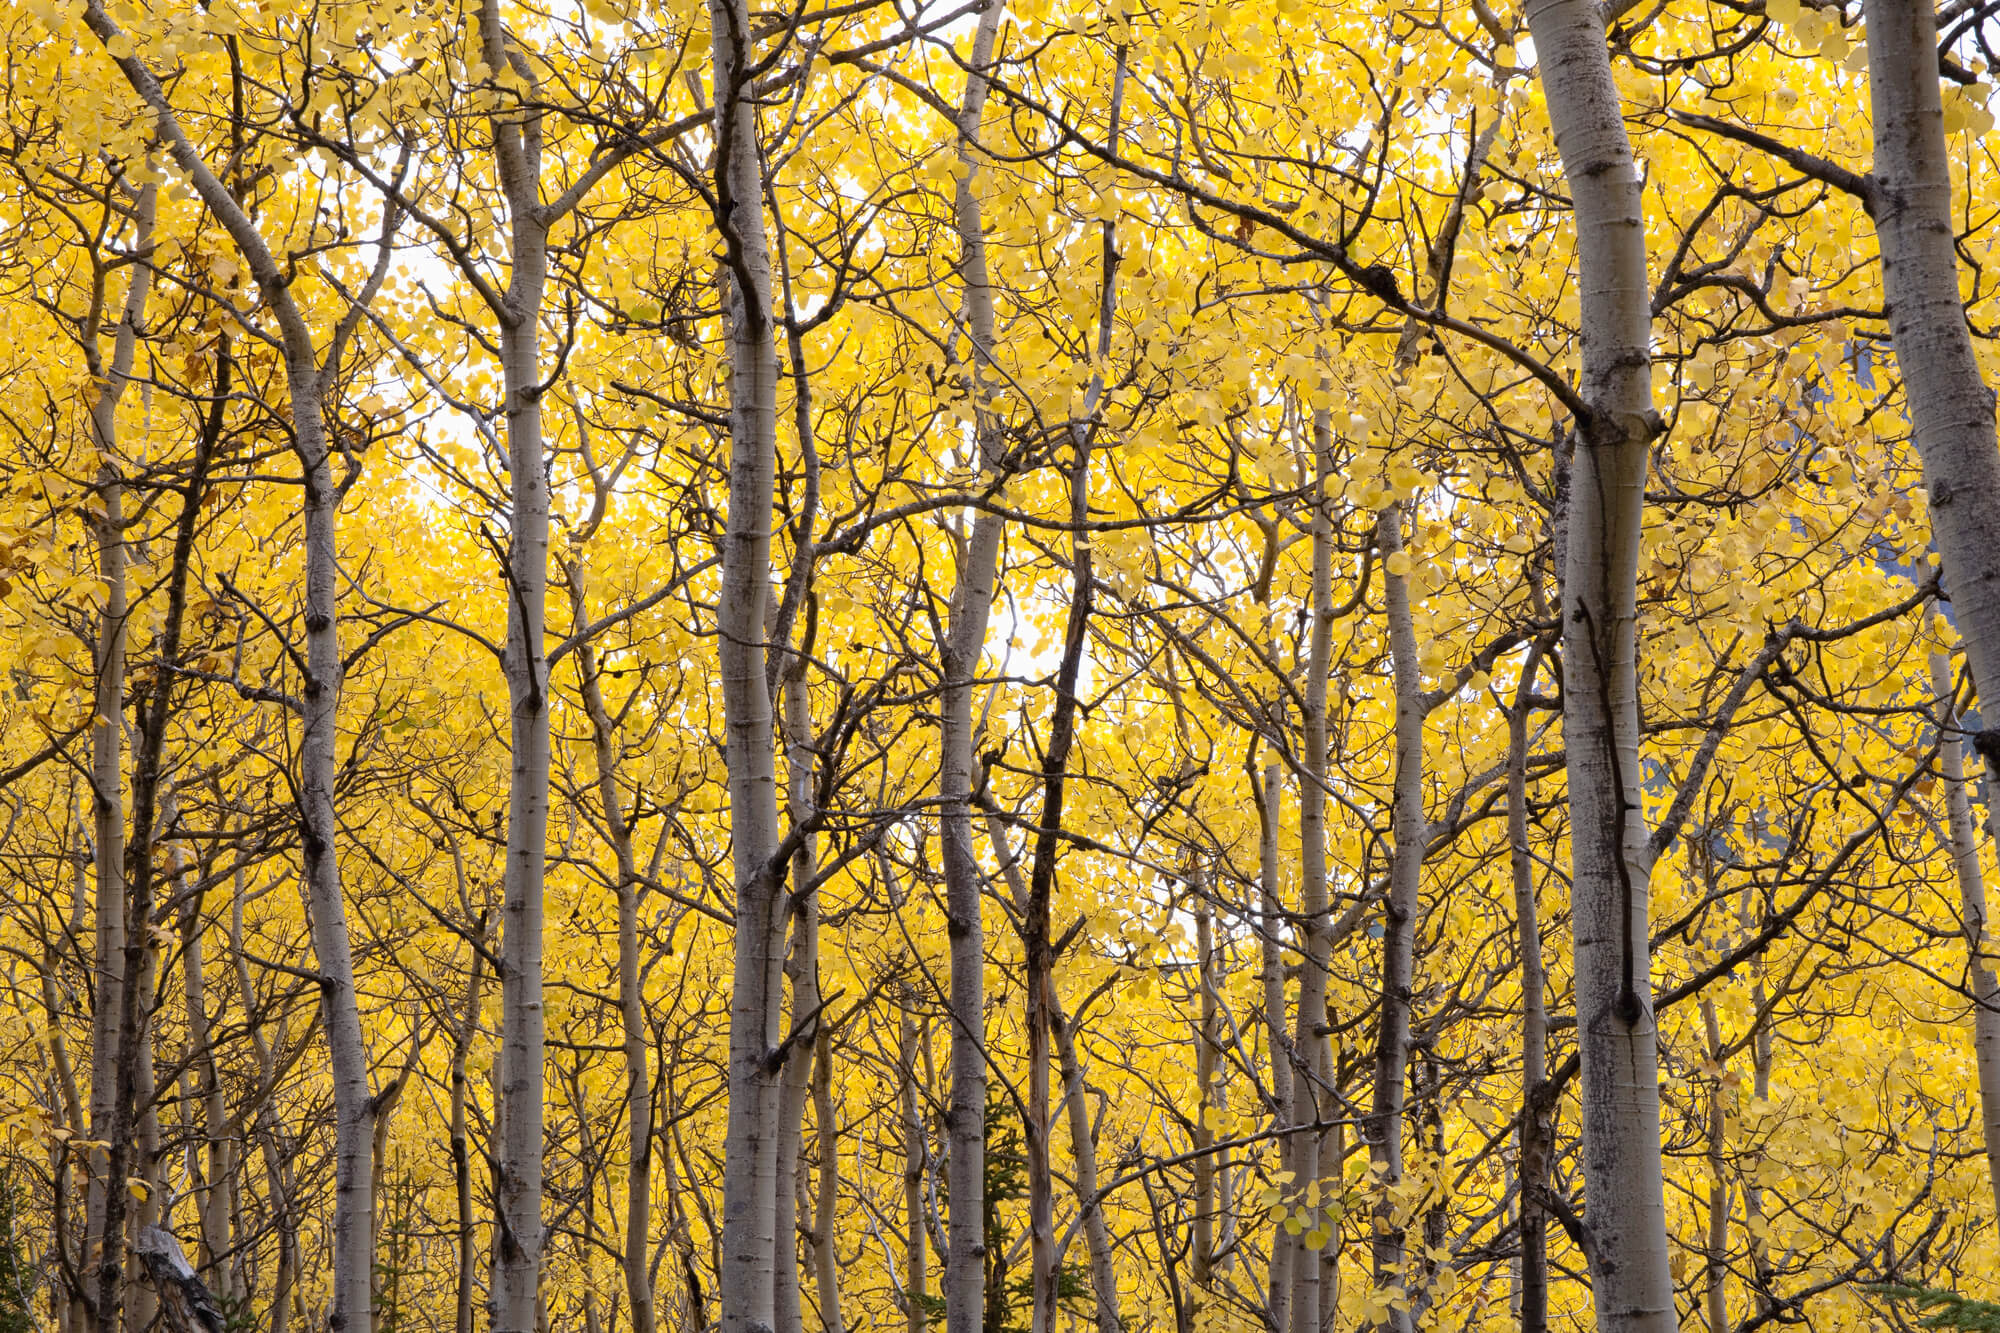 Autumn Scenic Of Colorful Yellow Aspen Trees Wall Mural ...